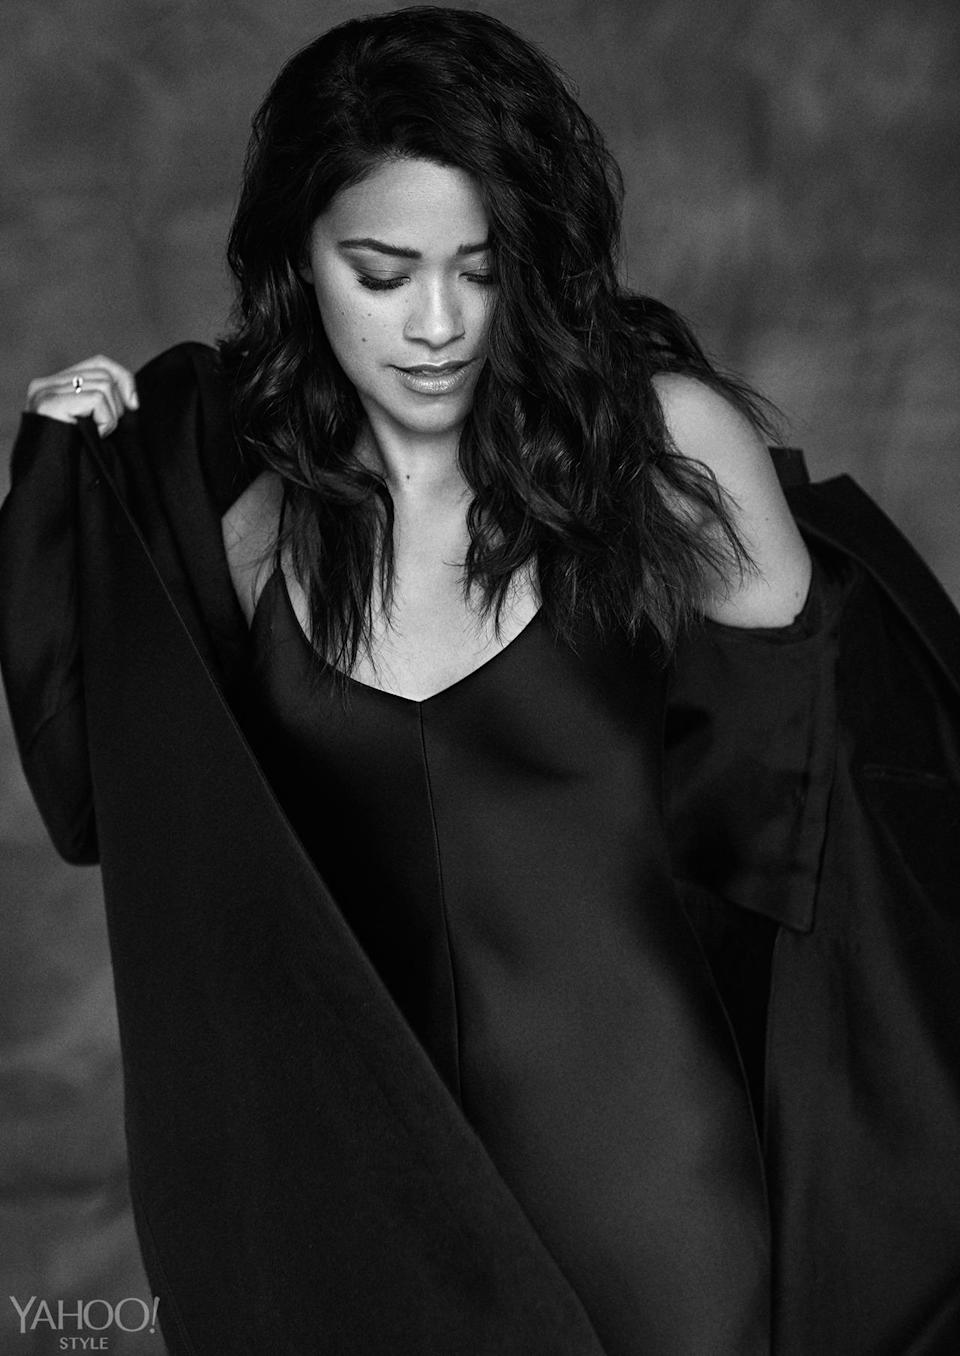 """<p>""""Sometimes I'll be like, <i>Come on, Jane. Don't be such a wimp!</i>"""" Rodriguez says about her character. """"But what I've realized is: Don't mistake kindness for weakness.""""</p><p><i><b>Equipment </b>Raquel silk-charmeuse maxi dress, $400, <a href=""""https://www.net-a-porter.com/us/en/product/638286/Equipment/racquel-silk-charmeuse-maxi-dress"""" rel=""""nofollow noopener"""" target=""""_blank"""" data-ylk=""""slk:Net-A-Porter"""" class=""""link rapid-noclick-resp"""">Net-A-Porter</a>. <b>Hermès </b><a href=""""http://usa.hermes.com/"""" rel=""""nofollow noopener"""" target=""""_blank"""" data-ylk=""""slk:wool coat"""" class=""""link rapid-noclick-resp"""">wool coat</a>, price upon request. <b>Tiffany & Co.</b> Tiffany Infinity ring in gold, $2,200, <a href=""""http://www.tiffany.com/jewelry/rings/tiffany-infinity-ring-GRP08688/tiffany-infinity-ring-35244077?&&fromGrid=1&search_params=p+1-n+10000-c+287466-s+5-r+-t+-ni+1-x+-lr+-hr+-ri+-mi+-pp+1197+6&search=0&origin=browse&searchkeyword=&trackpdp=bg&fromcid=287466"""" rel=""""nofollow noopener"""" target=""""_blank"""" data-ylk=""""slk:Tiffany & Co."""" class=""""link rapid-noclick-resp"""">Tiffany & Co. </a></i><br></p>"""